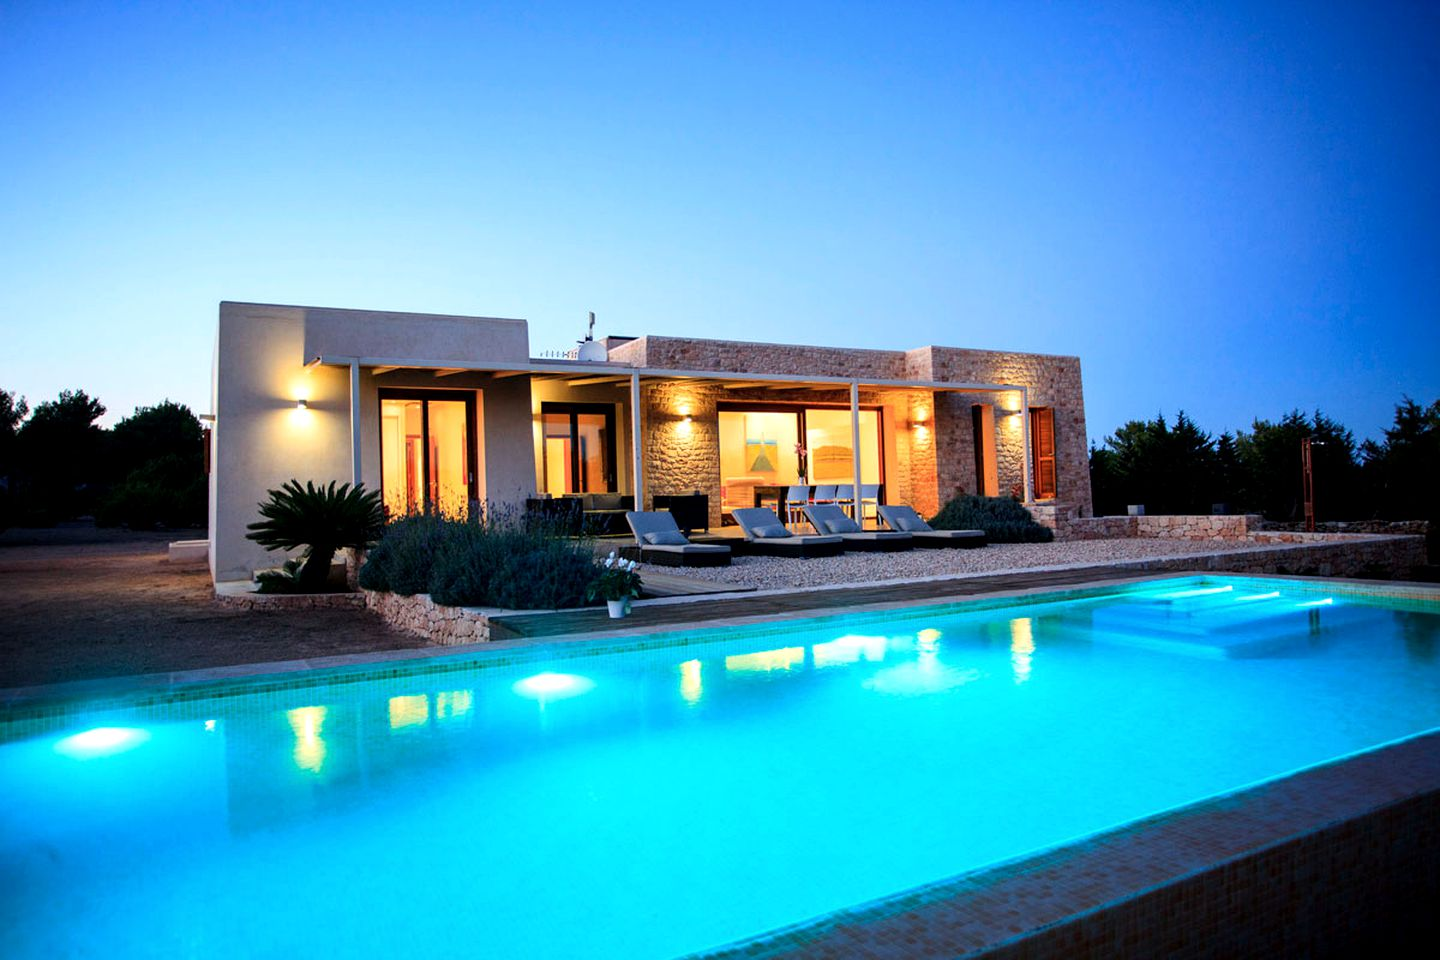 Cabins (Formentera, Balearic Islands, Spain)